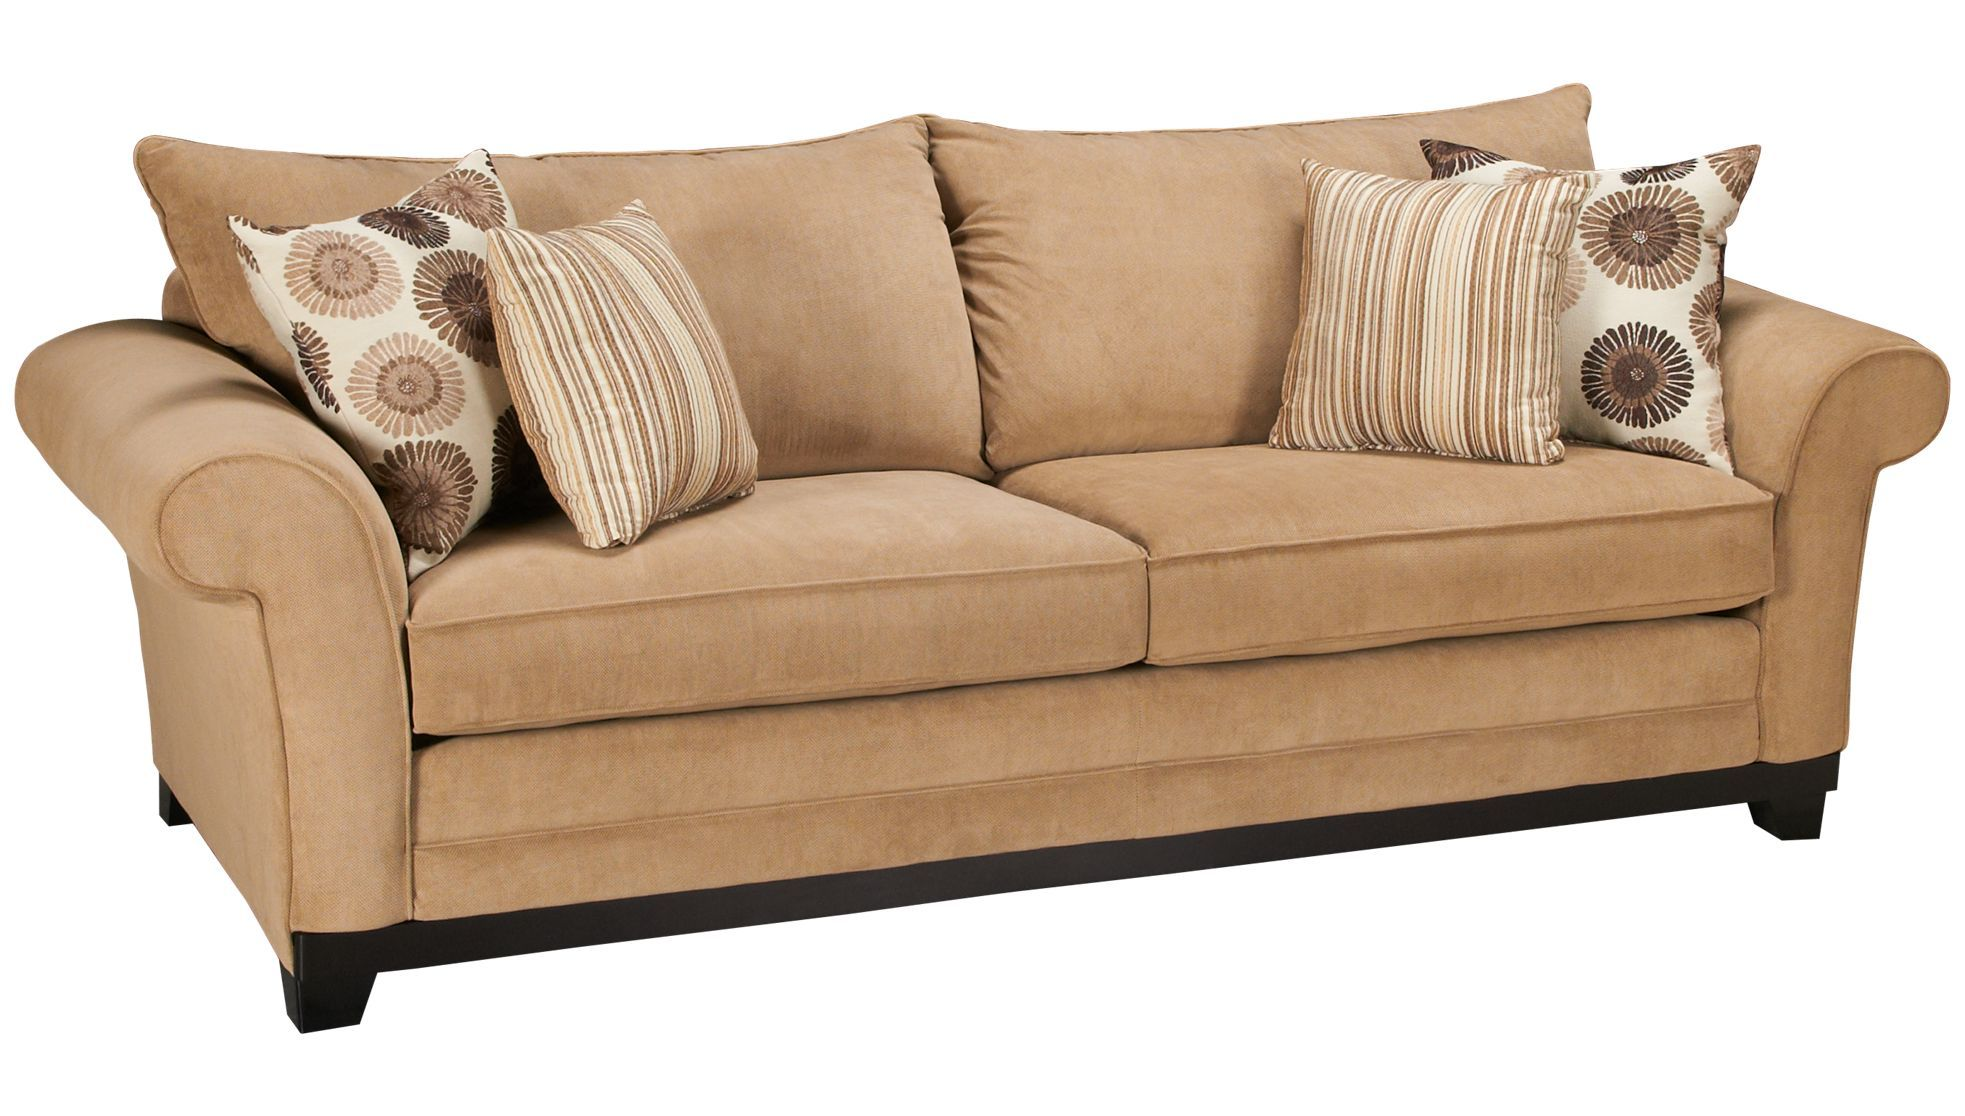 Ashley   Kylee   Sofa   Discount Furniture For Sale In MA, NH And RI At  Jordanu0027s   Decorating Living Rooms   Pinterest   Cats, Jordans And Yellow  Sofa